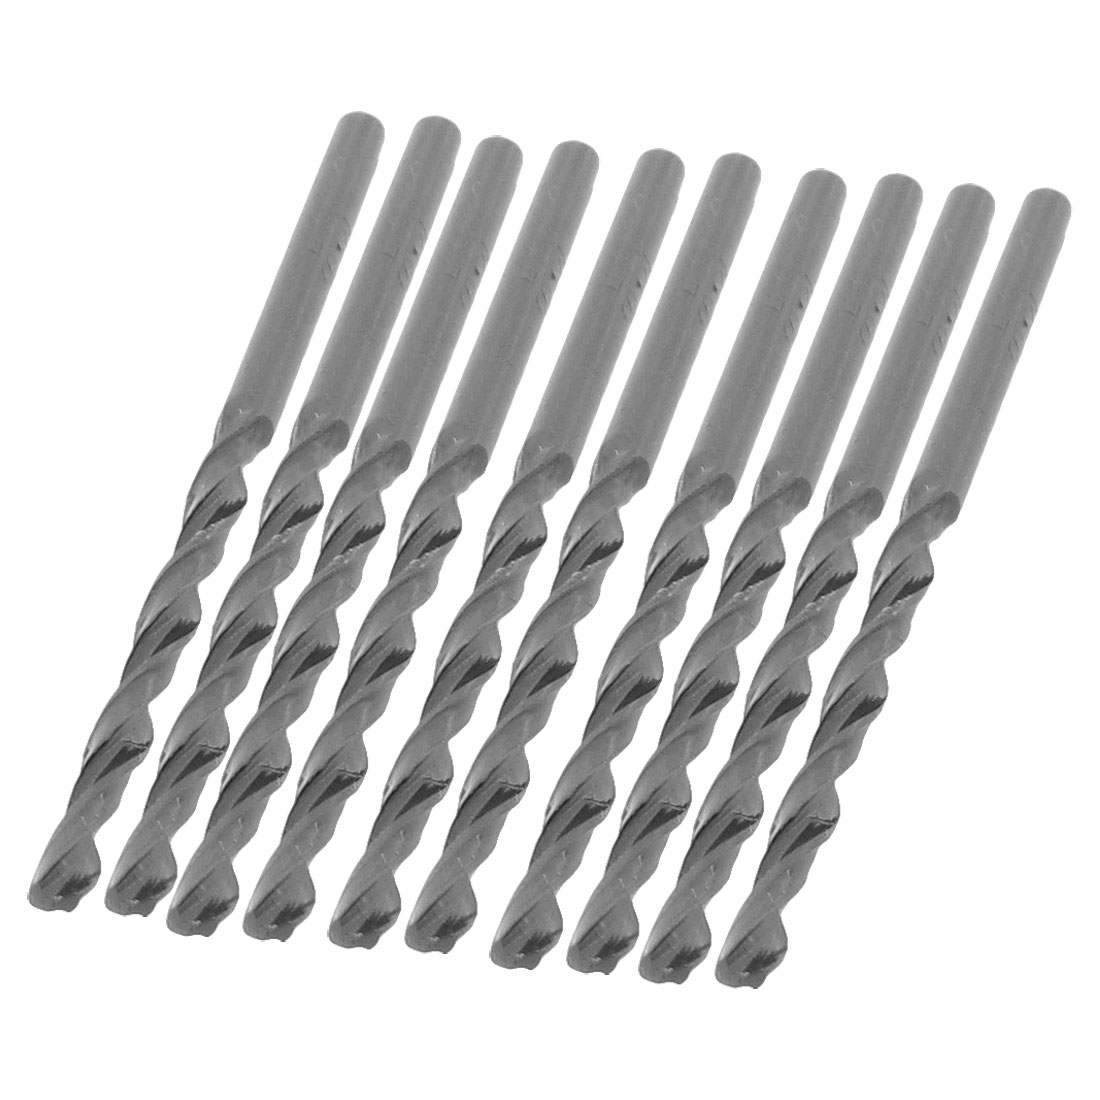 10 Pcs Gray HSS 2mm Diameter Straight Shank Twist Drill Bits